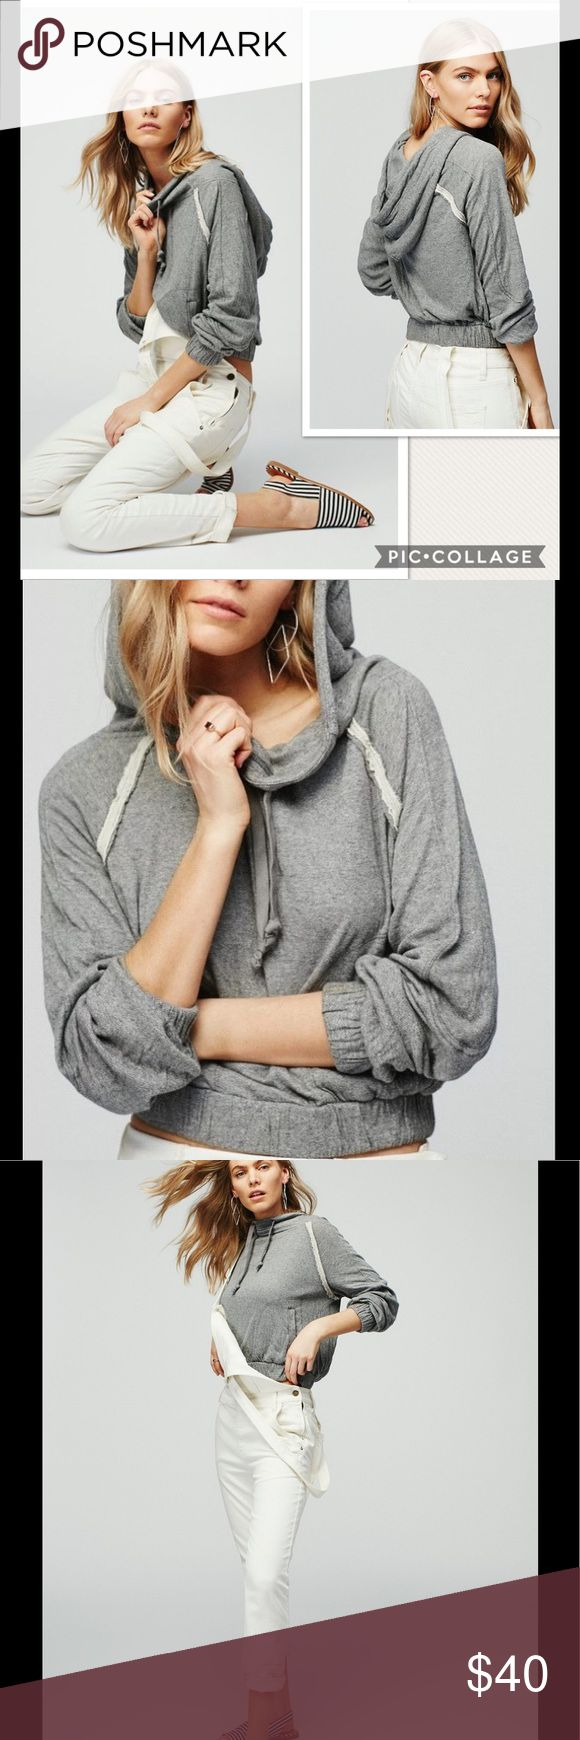 NWT Free People Kimmie Hooded Gray Pullover Top Ribbons of raw-edge gauze mark the raglan sleeves of a comfy-cool hooded pullover, perfectly combining athletic and boho sensibilities. A stretchy waistband and cuffs complete the cozy look.  Funnel neck with drawstring hood. Long sleeves with elastic cuffs. Side slip pockets. 70% cotton, 23% polyester, 7% rayon. Machine wash cold, tumble dry low. Free People Tops